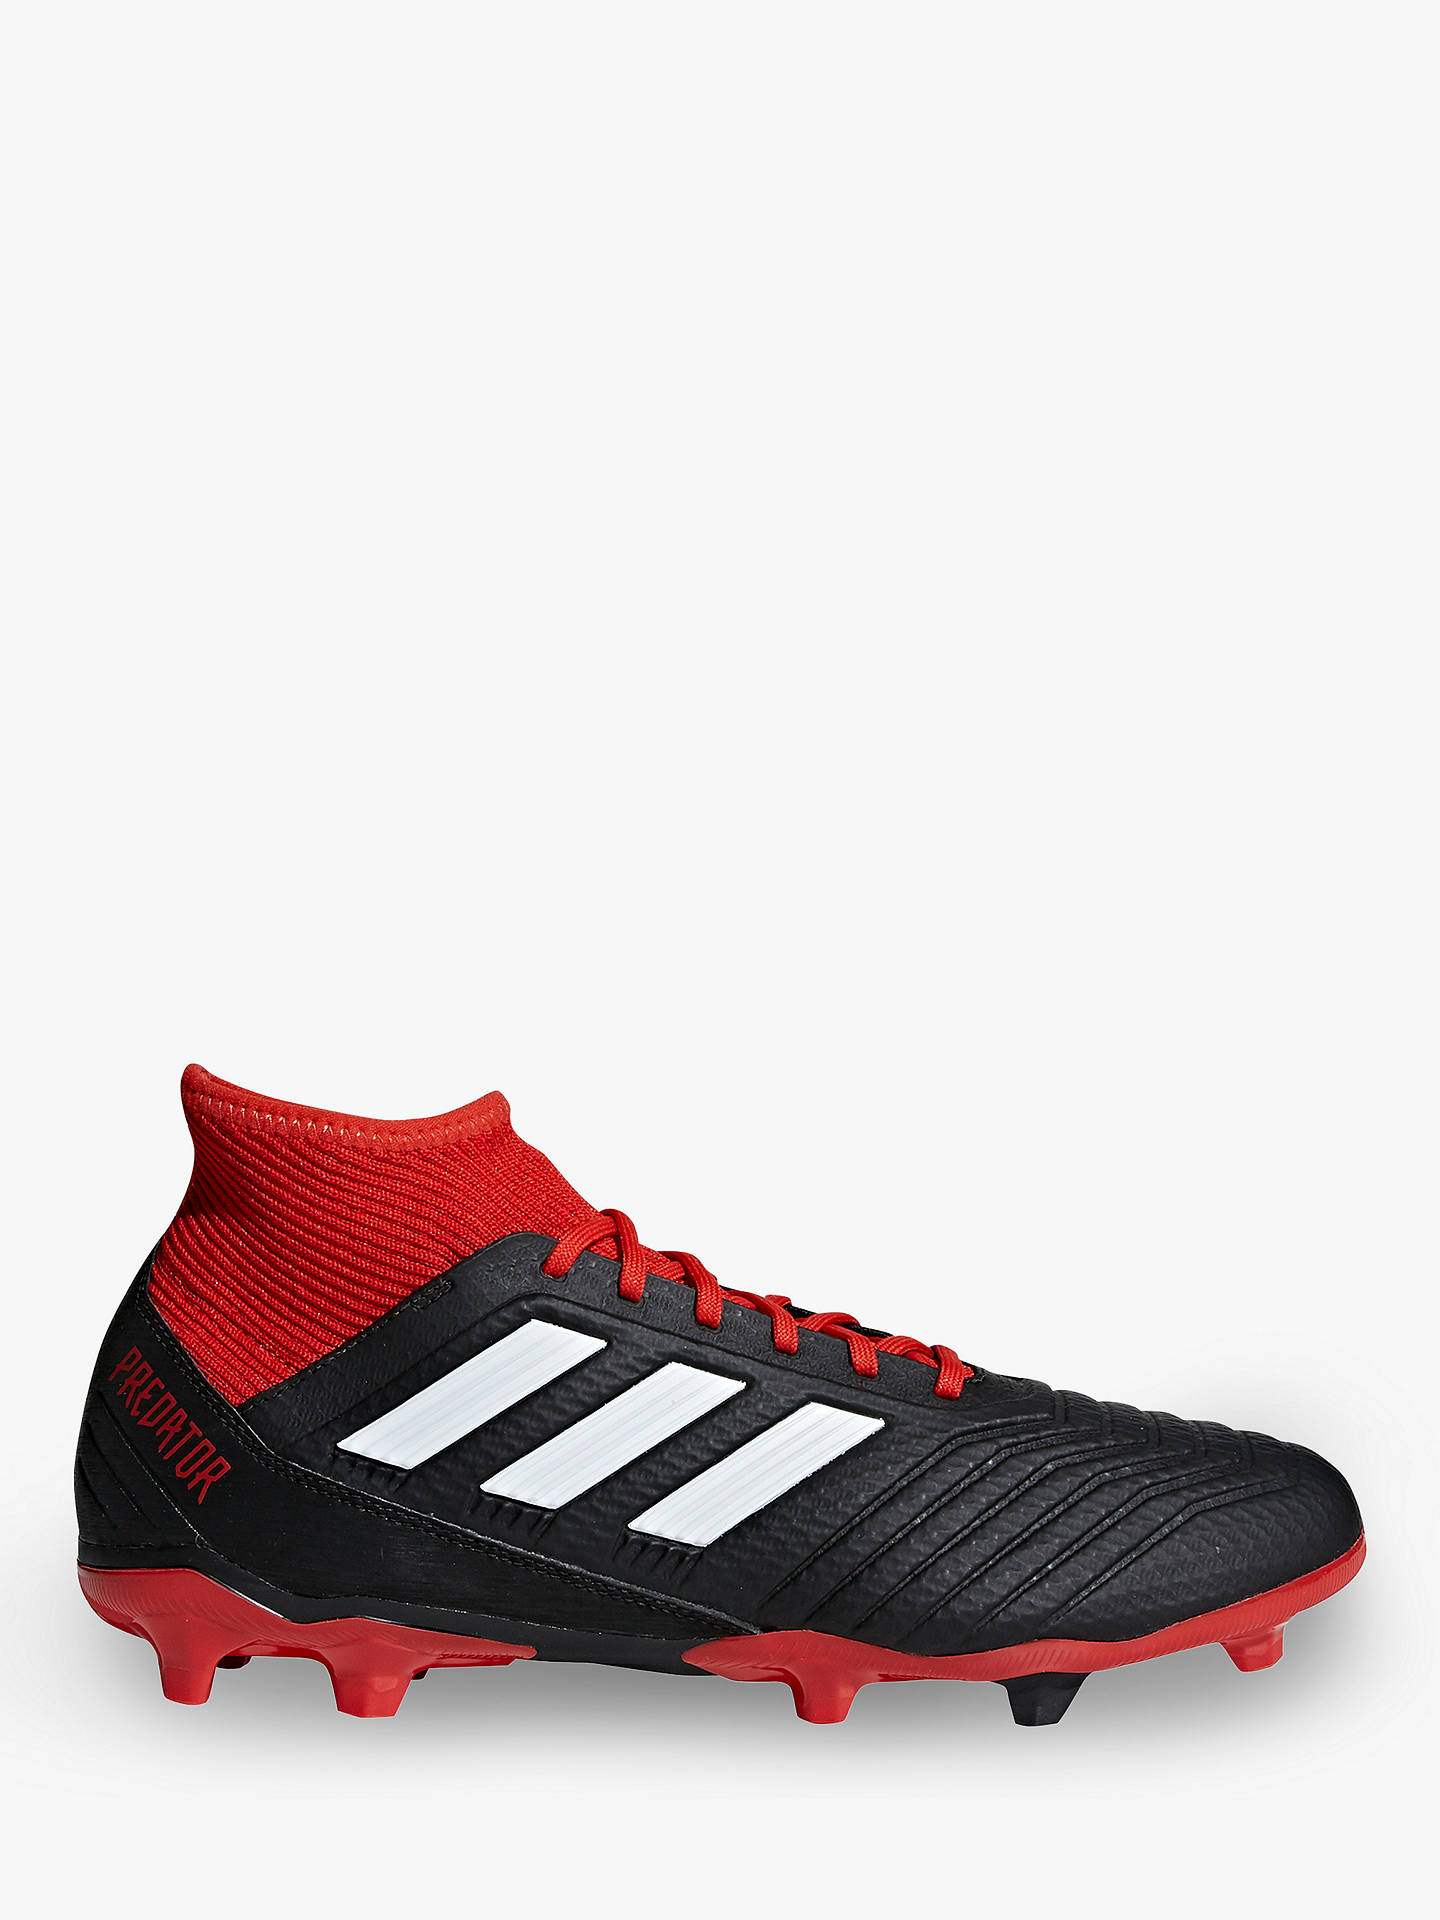 51246d898f4 Buy adidas Predator 18.3 Men s Football Boots